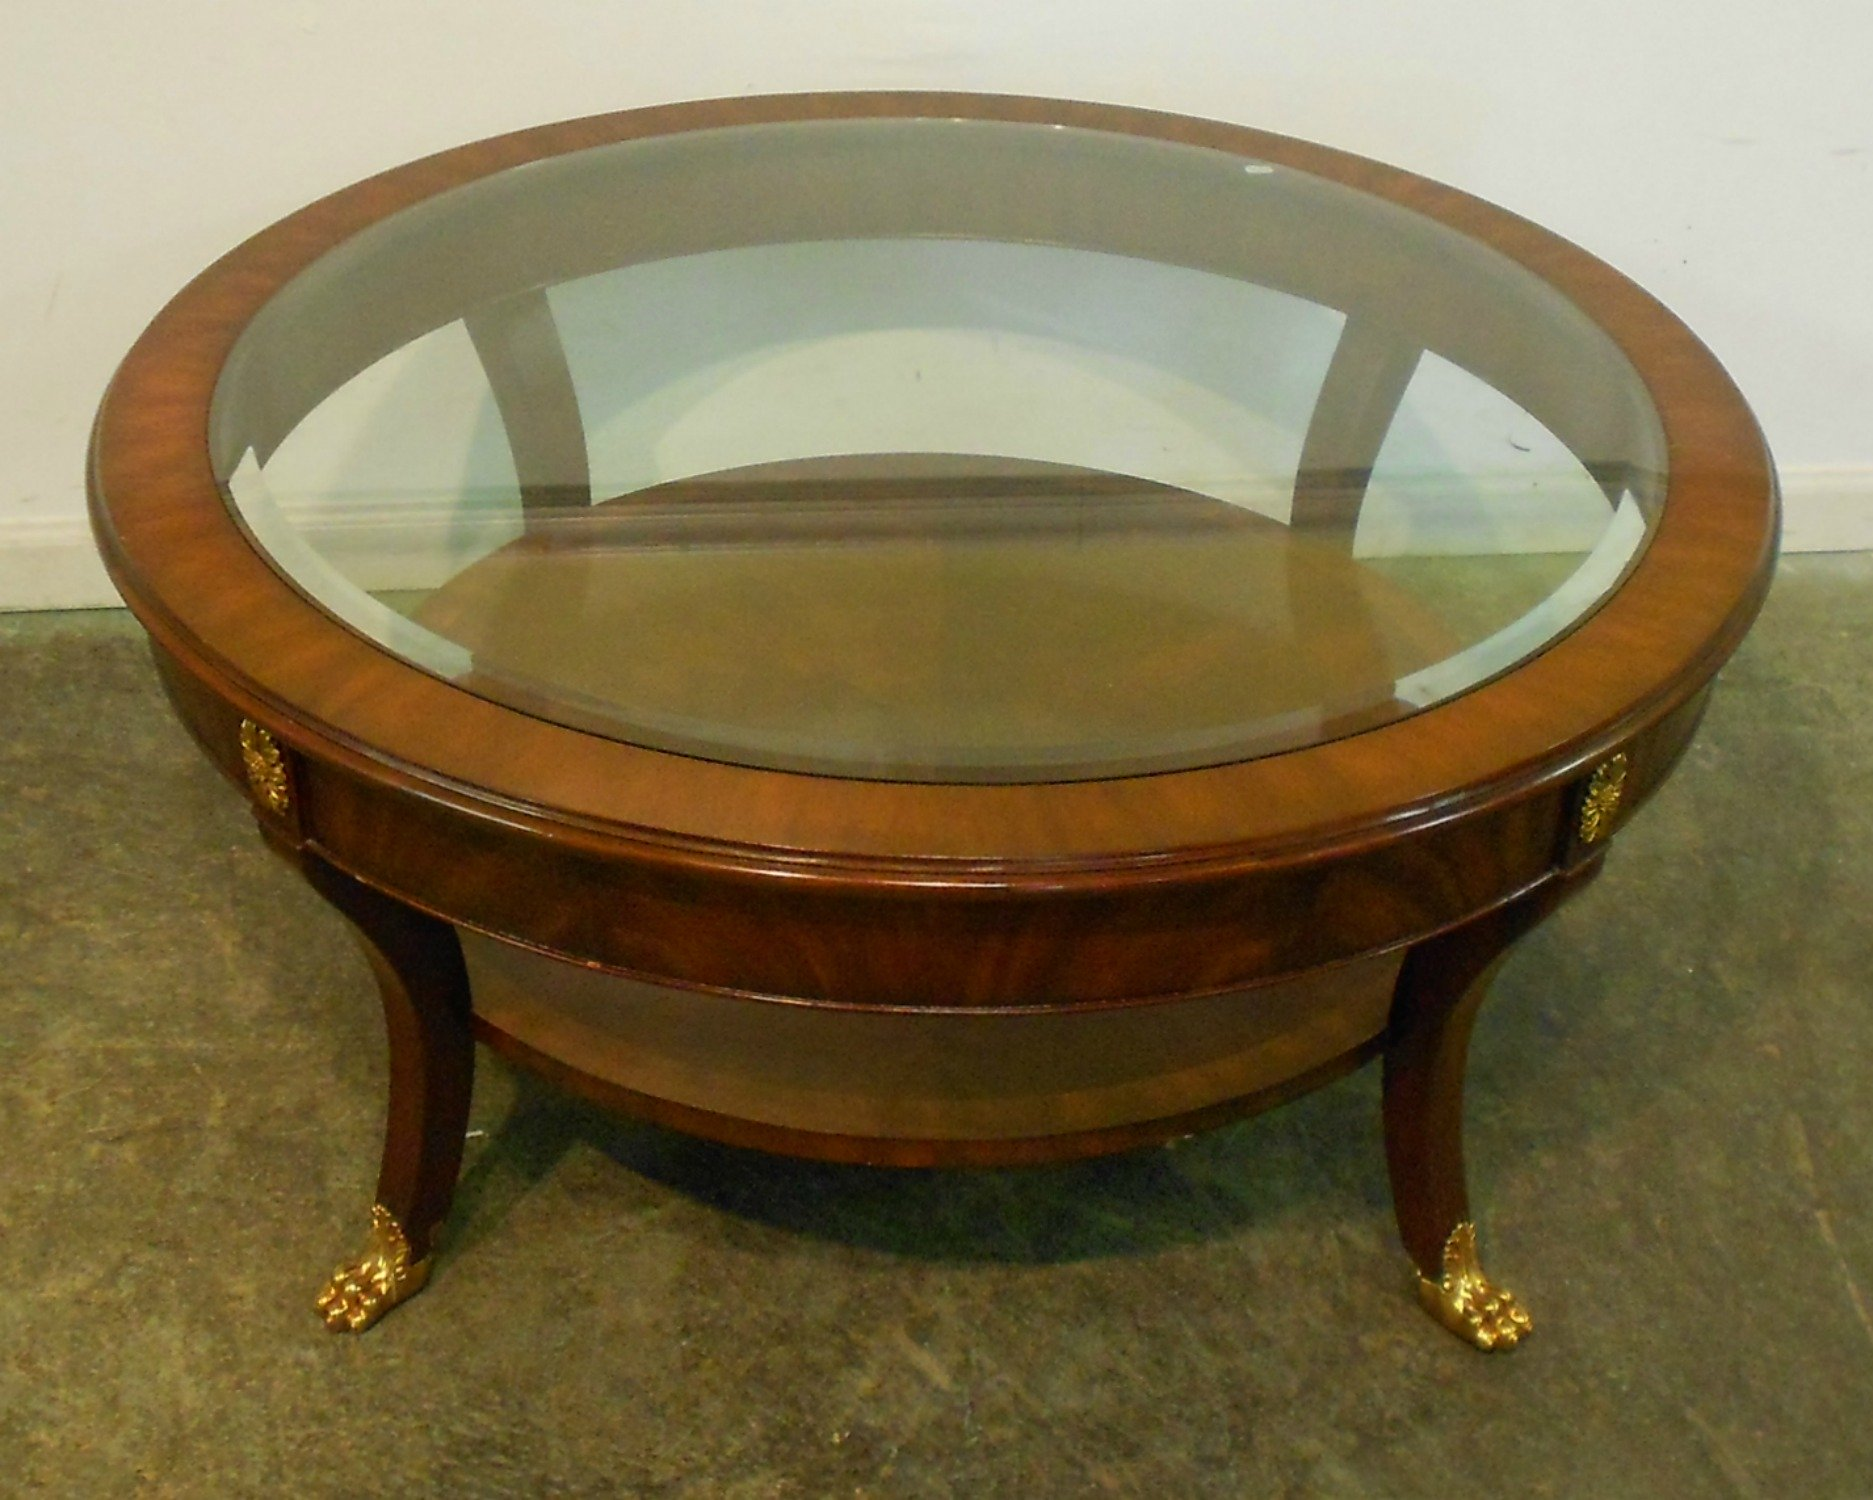 small-round-mahogany-coffee-table-with-glass-top-brass-legs-and-shelves-for-rustic-mahogany-round-coffee-table-ideas (Image 10 of 10)